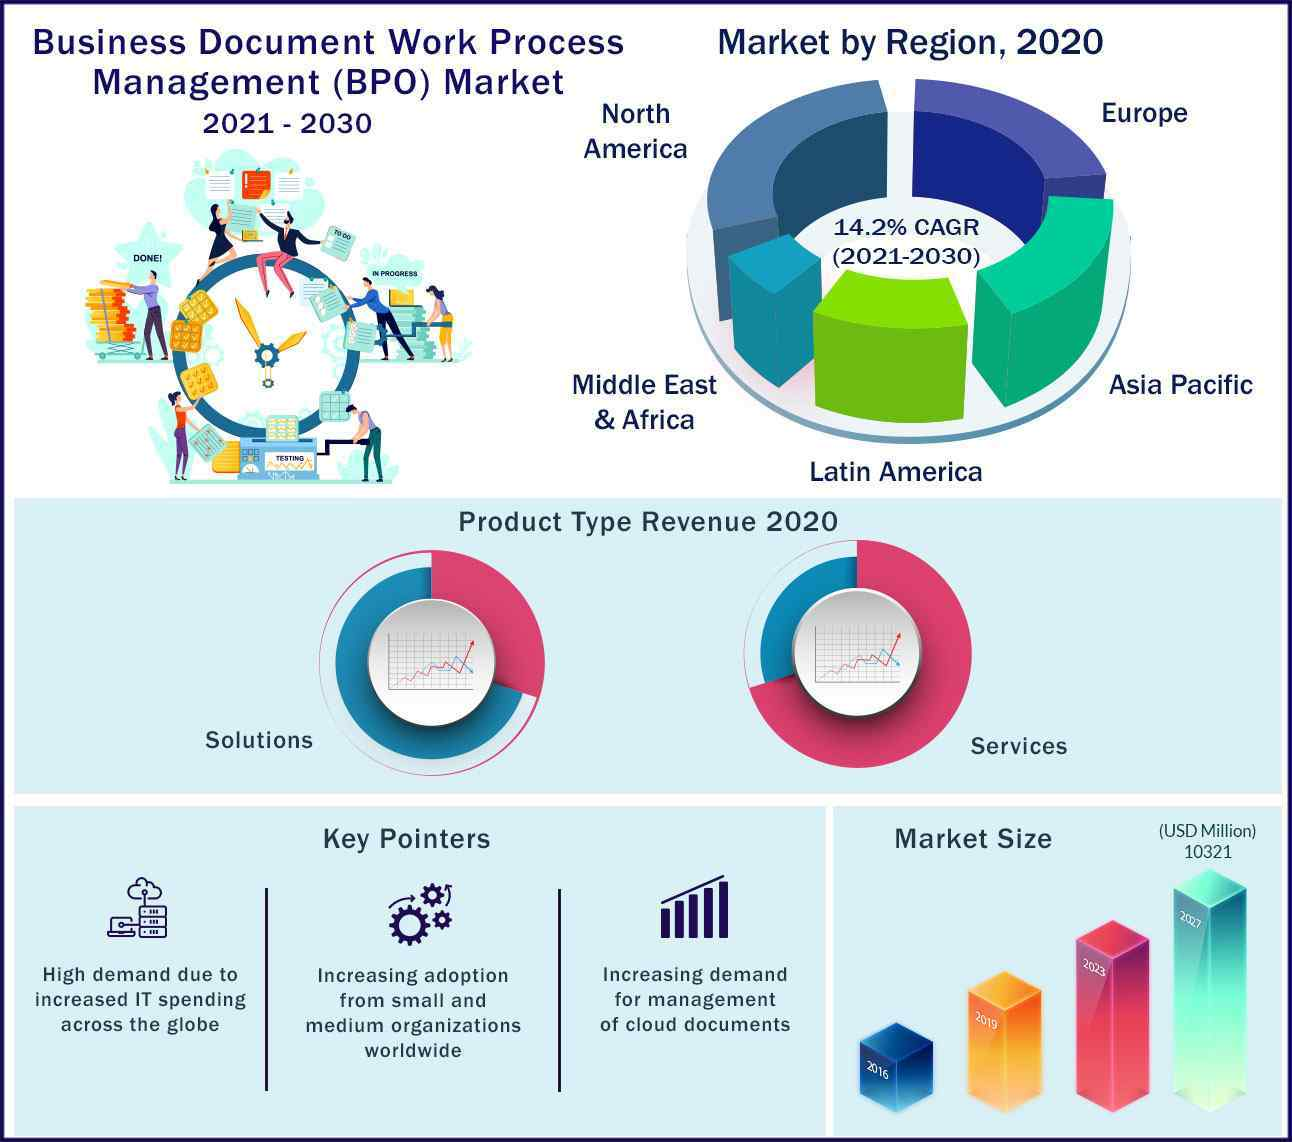 Global Business Document Work Process Management Market 2021-2030